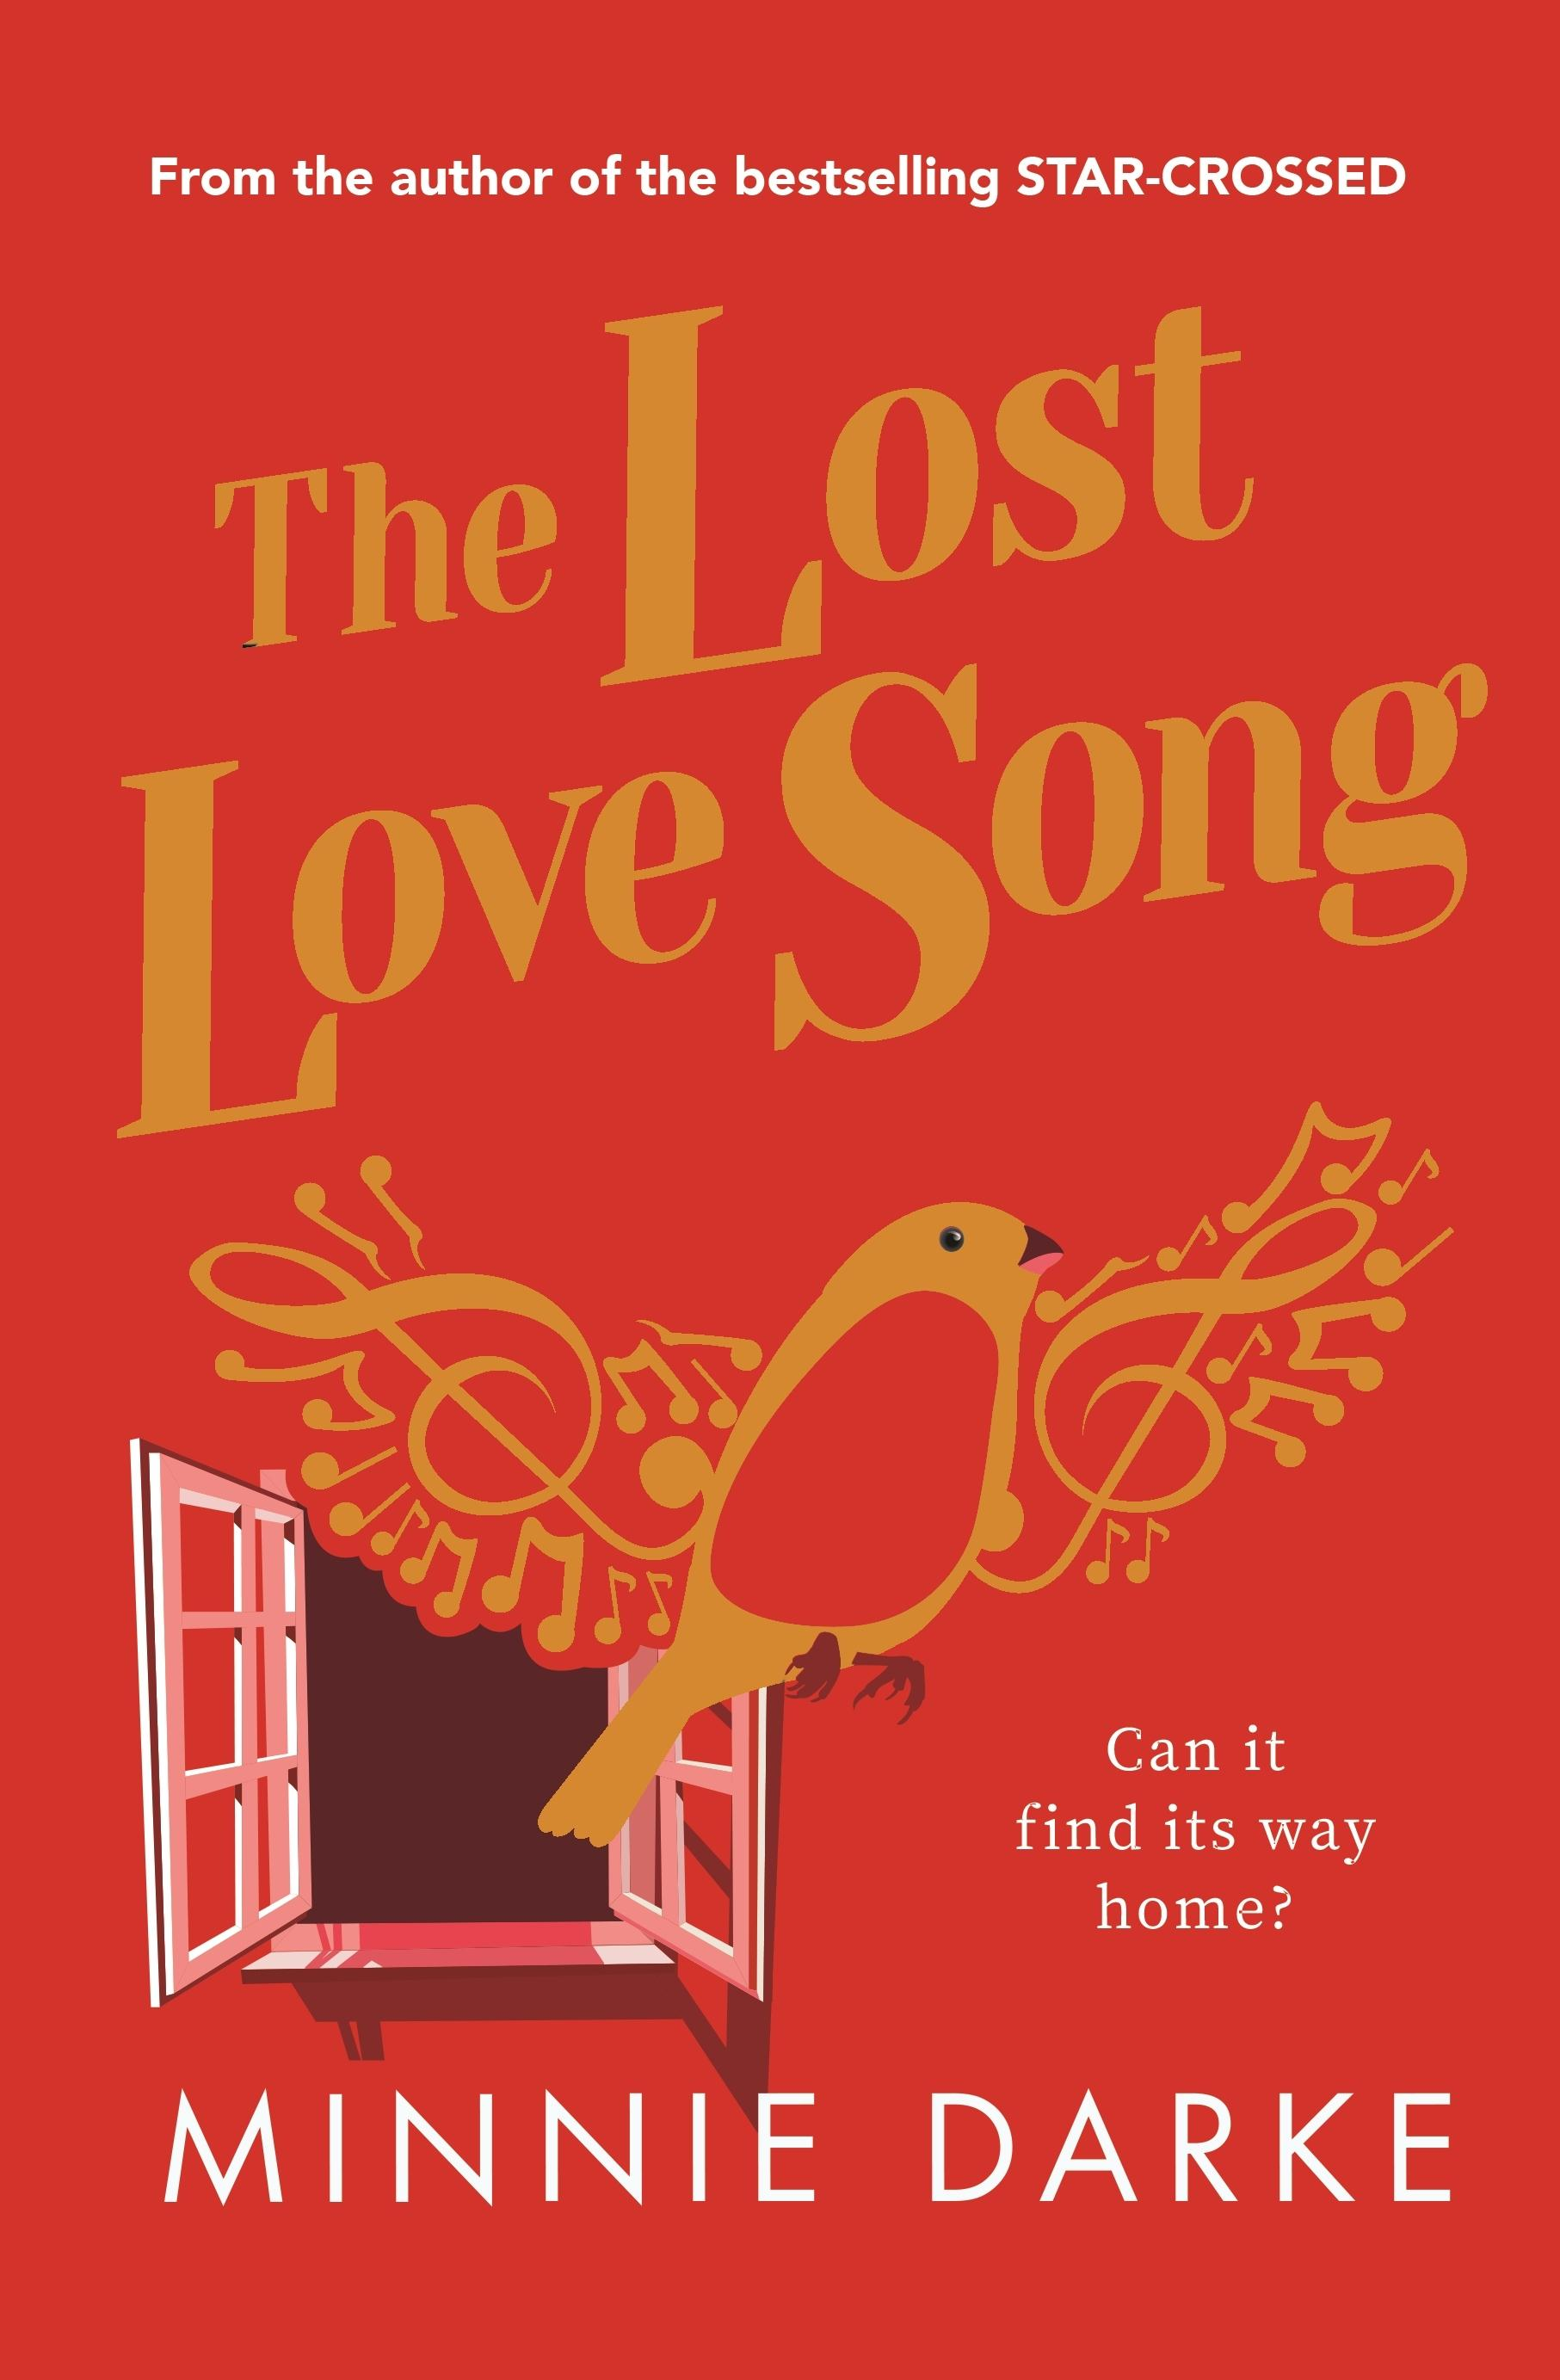 The LostLoveSong